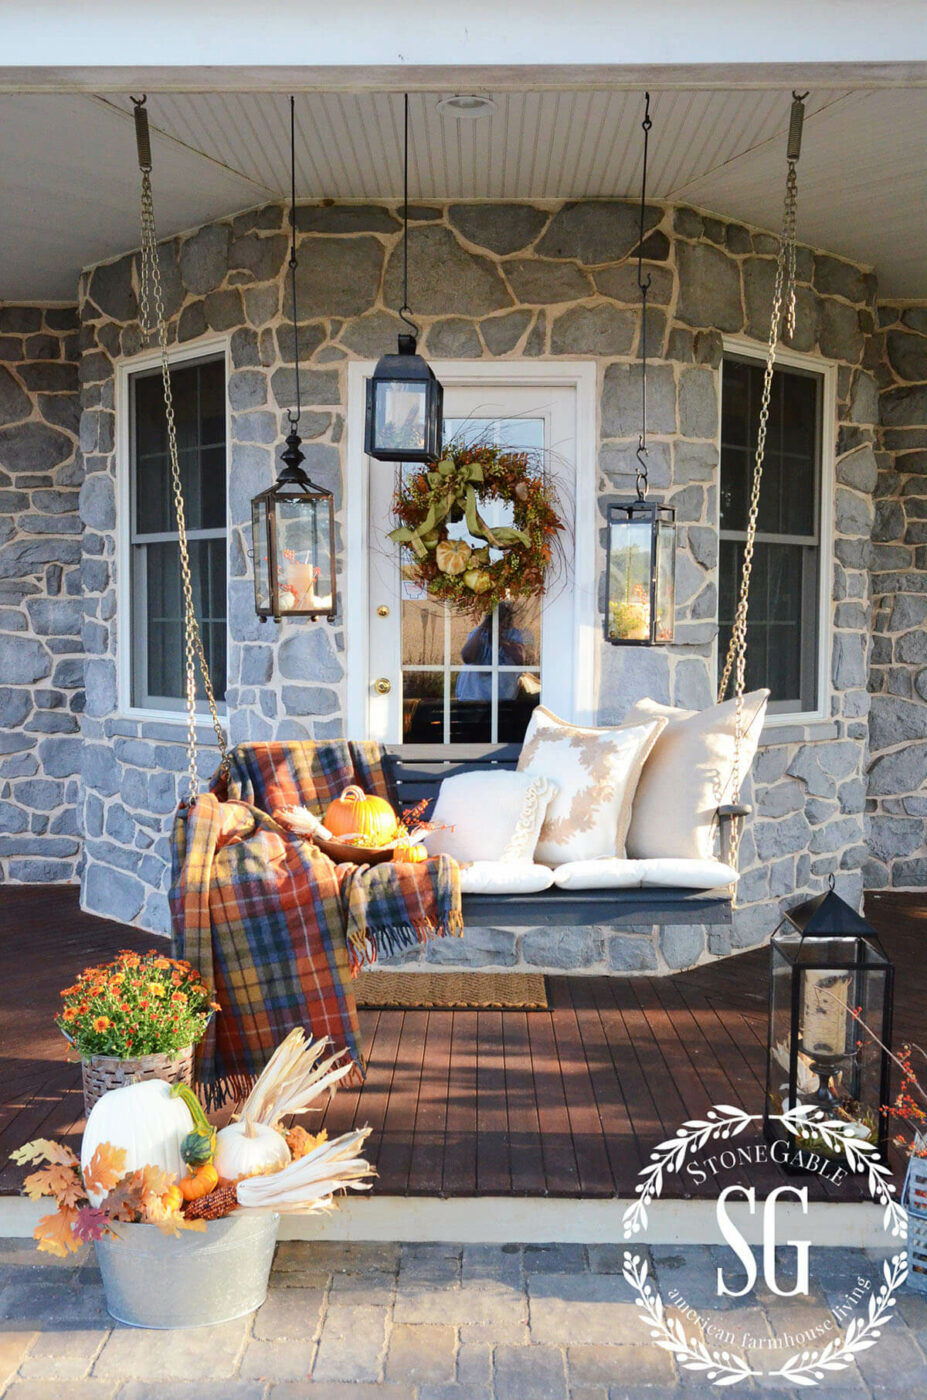 Accessories Transform Your Porch Swing for Fall